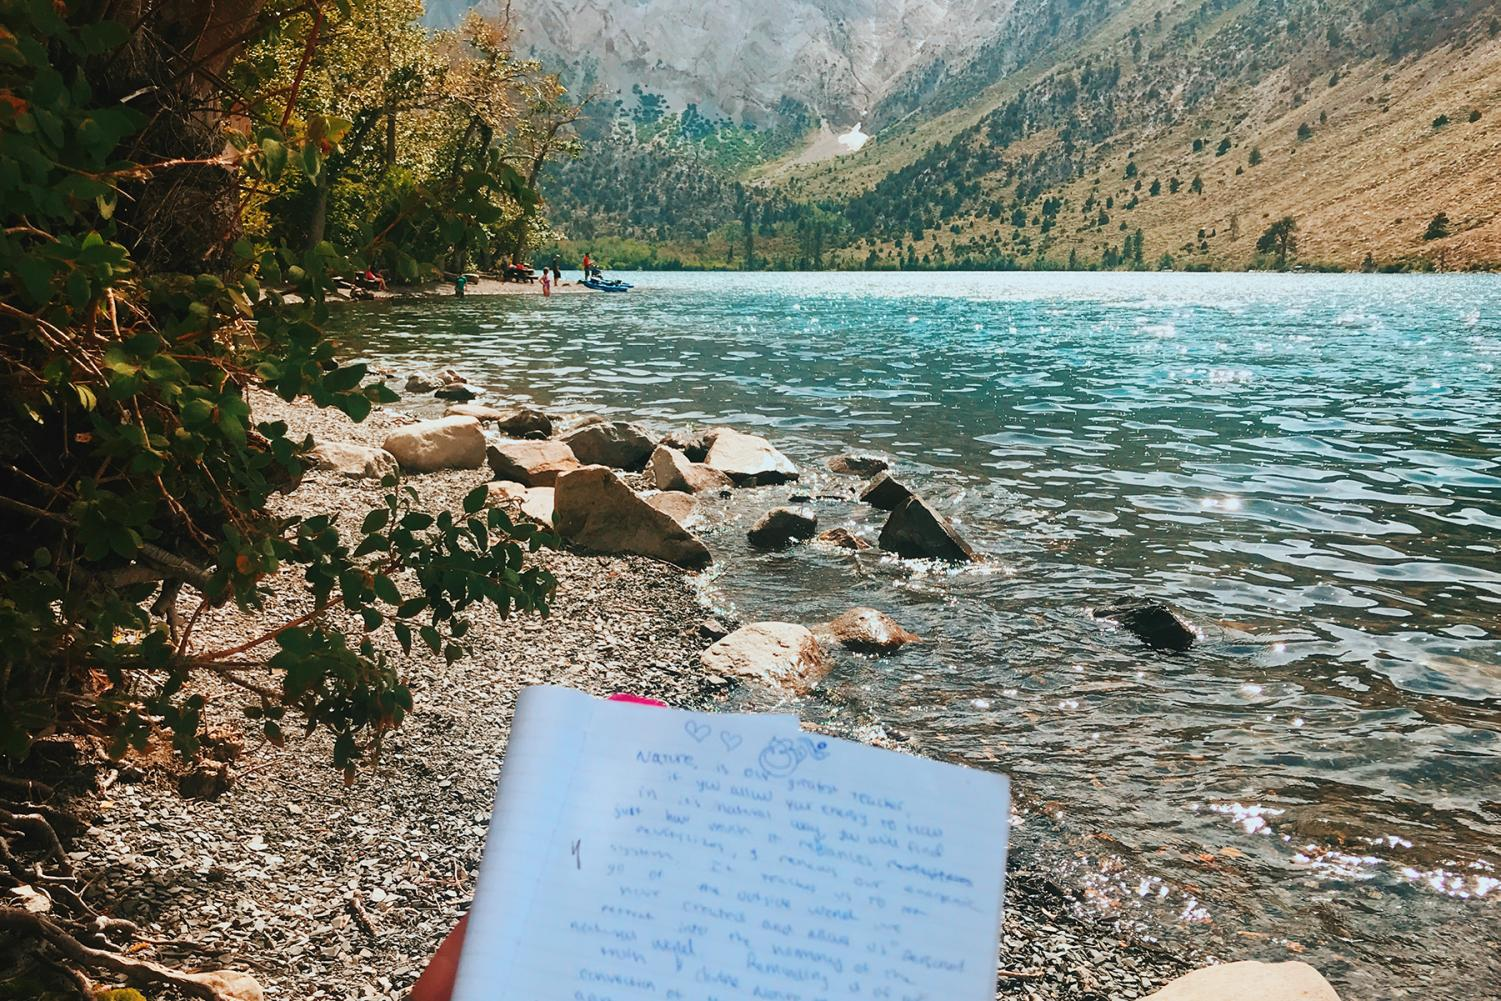 Journaling about the power of nature at Convict Lake in the springtime.